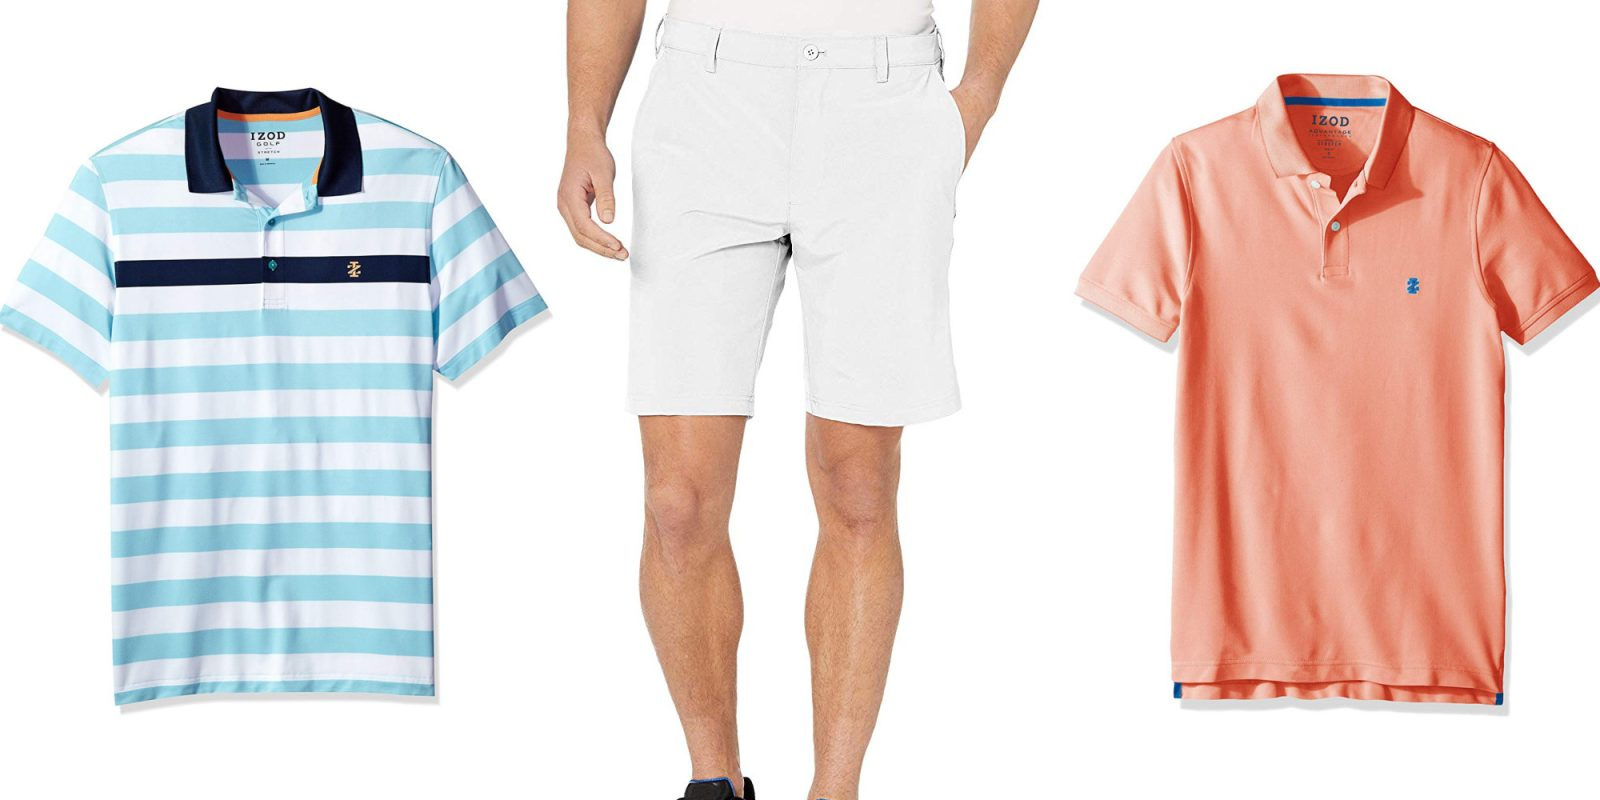 sells latest outlet store sale IZOD golf shirts and shorts up to 30% off for Prime members ...